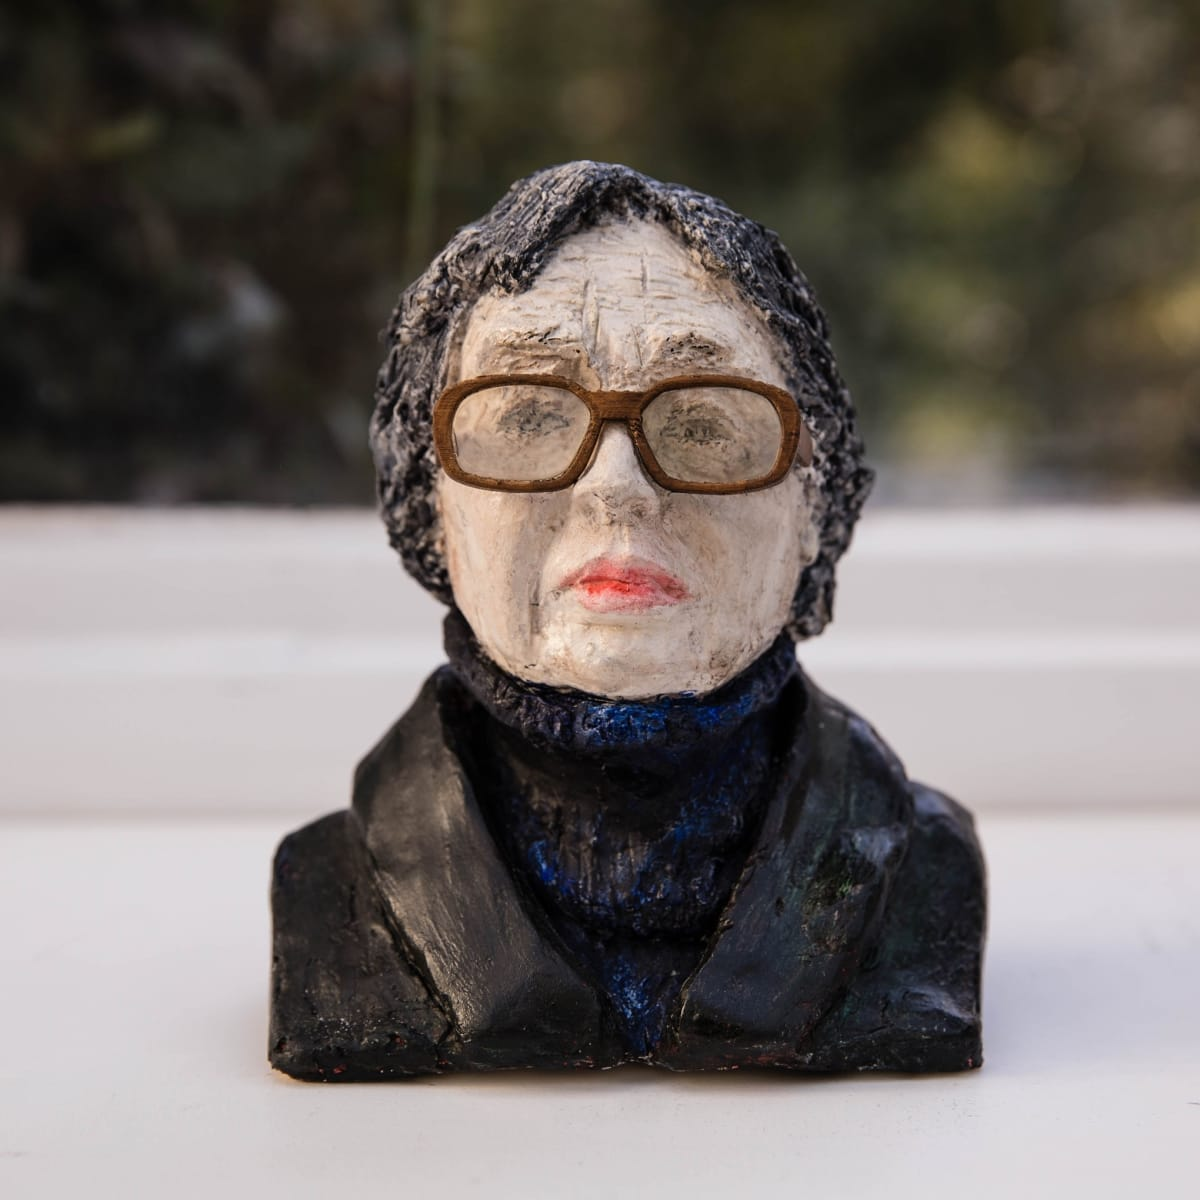 Nicole Farhi Marguerite Duras ciment fondu and acrylic; hand-painted bronze casts available to purchase 18 x 15 x 9 cm edition of 7 + 3 APs